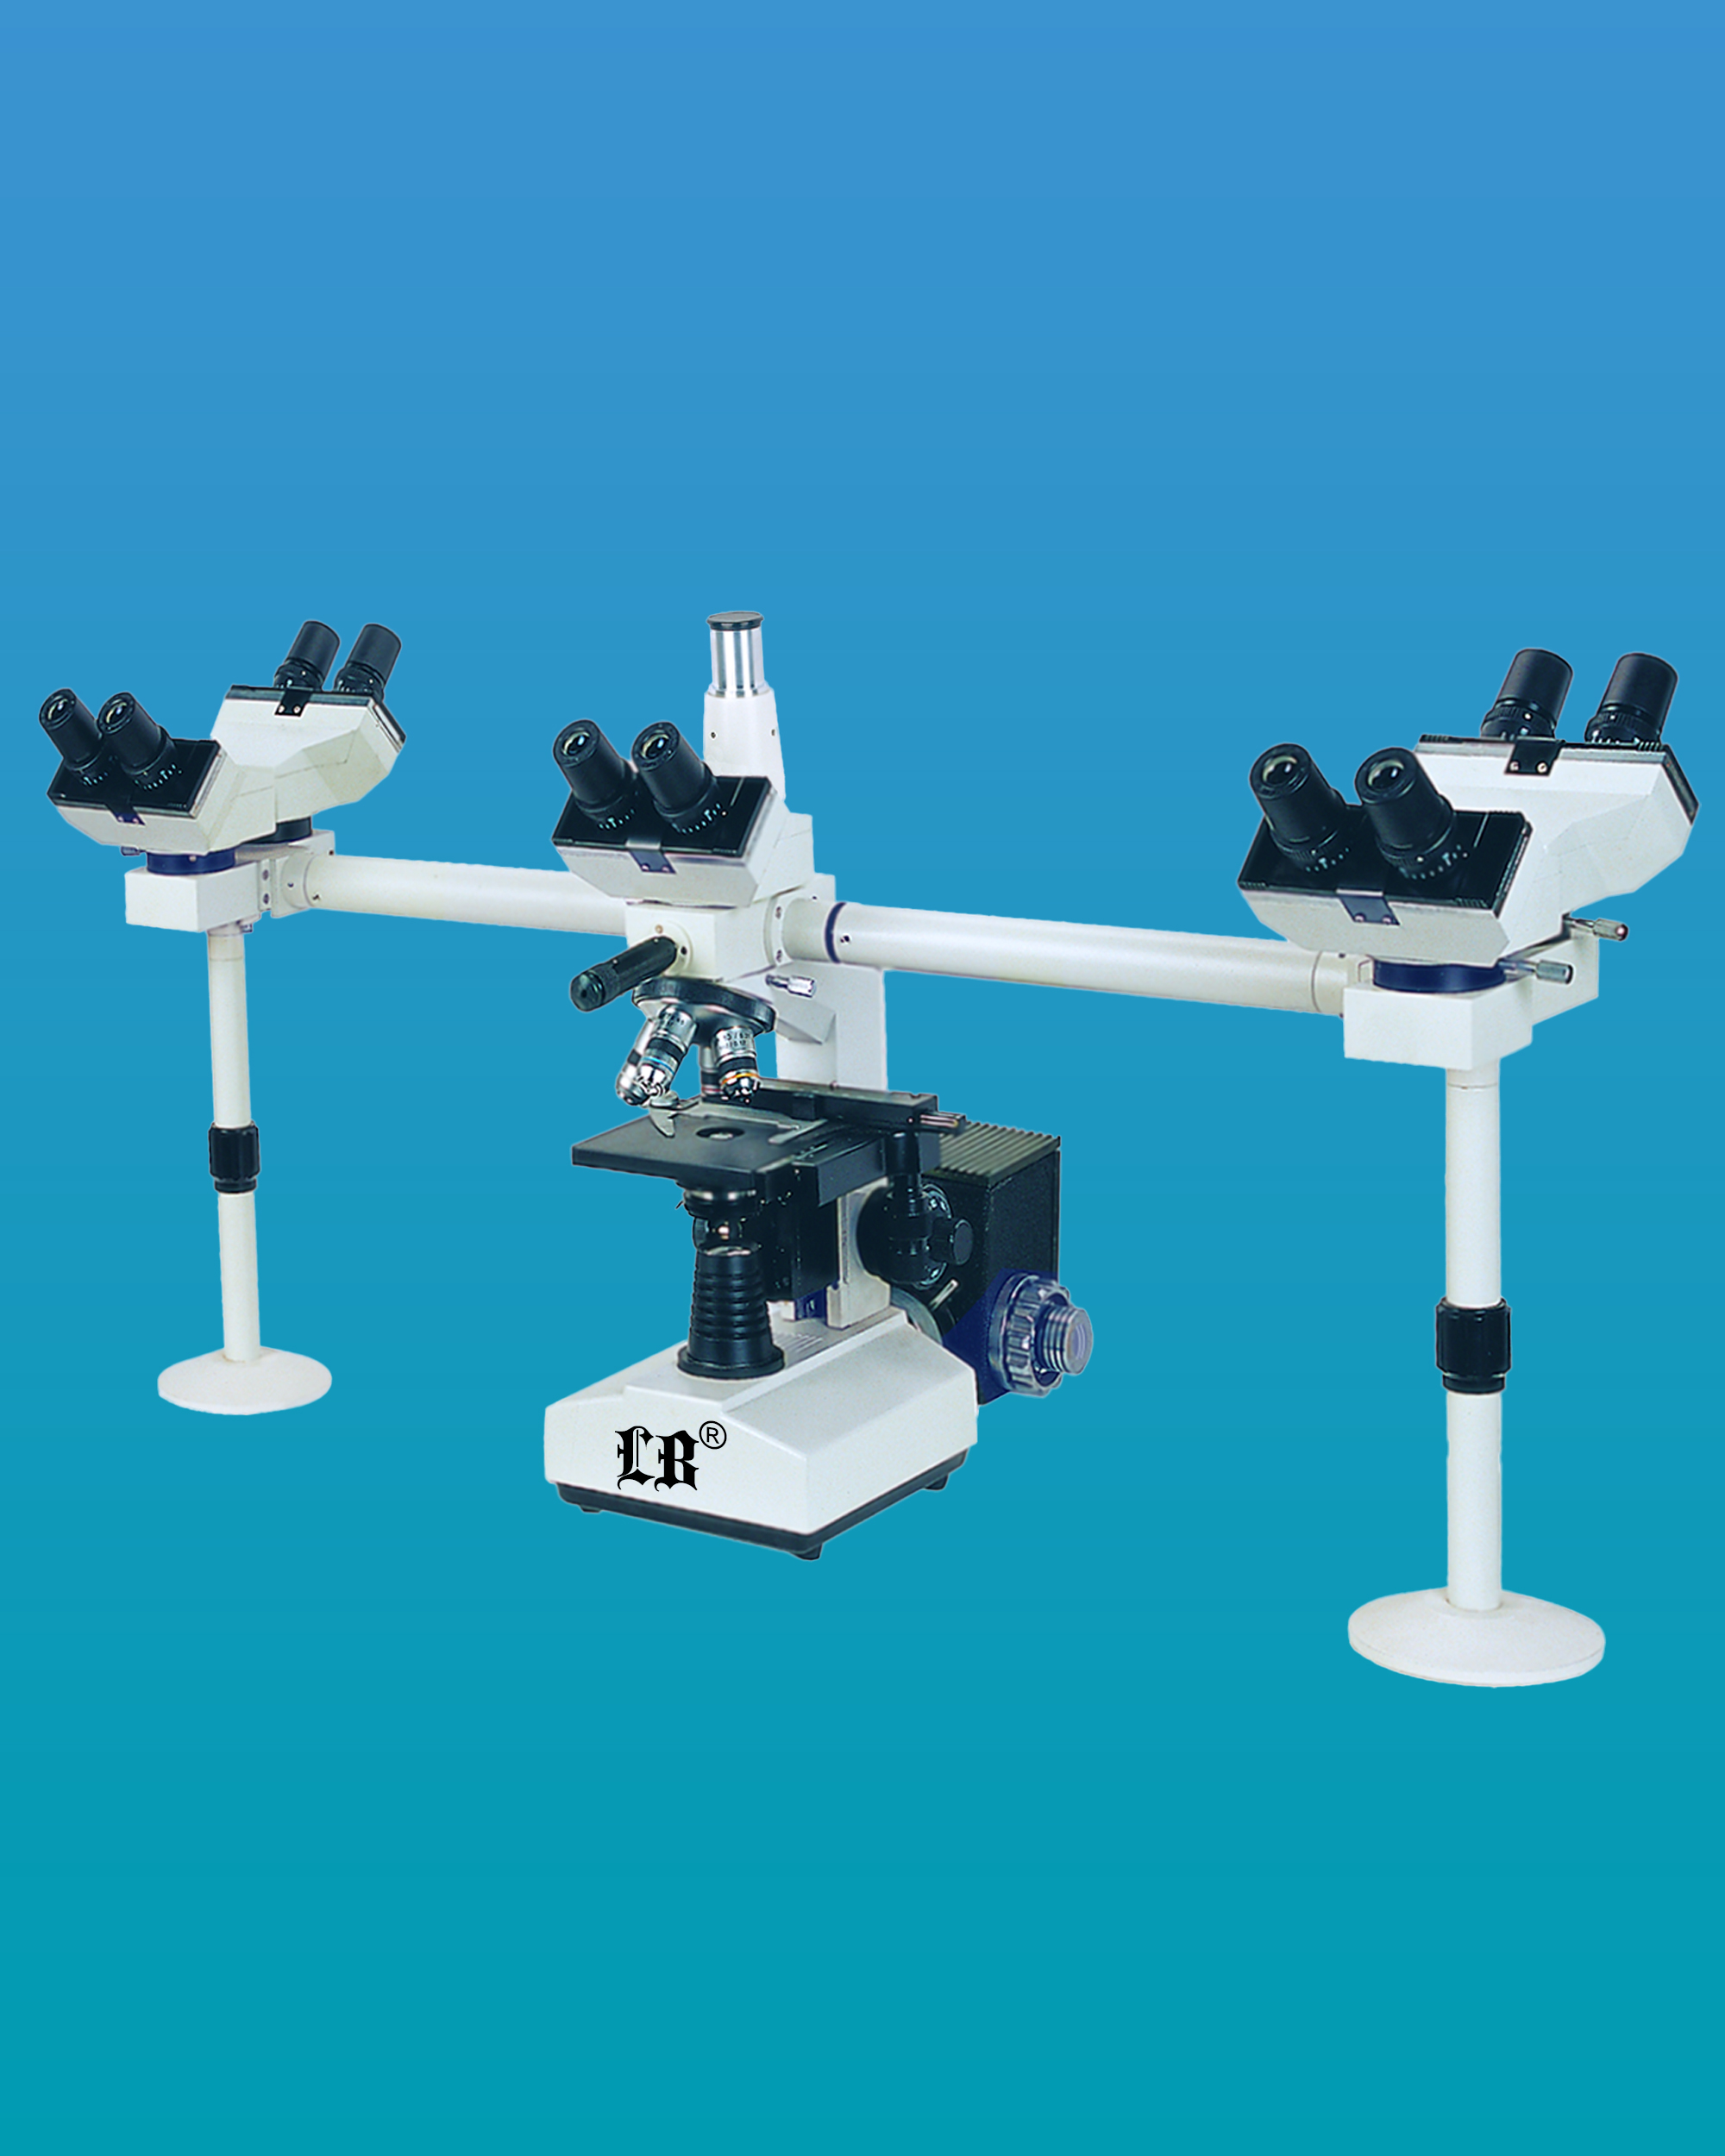 [LB-982] Multi-Head Microscope w/ Trinocular Head